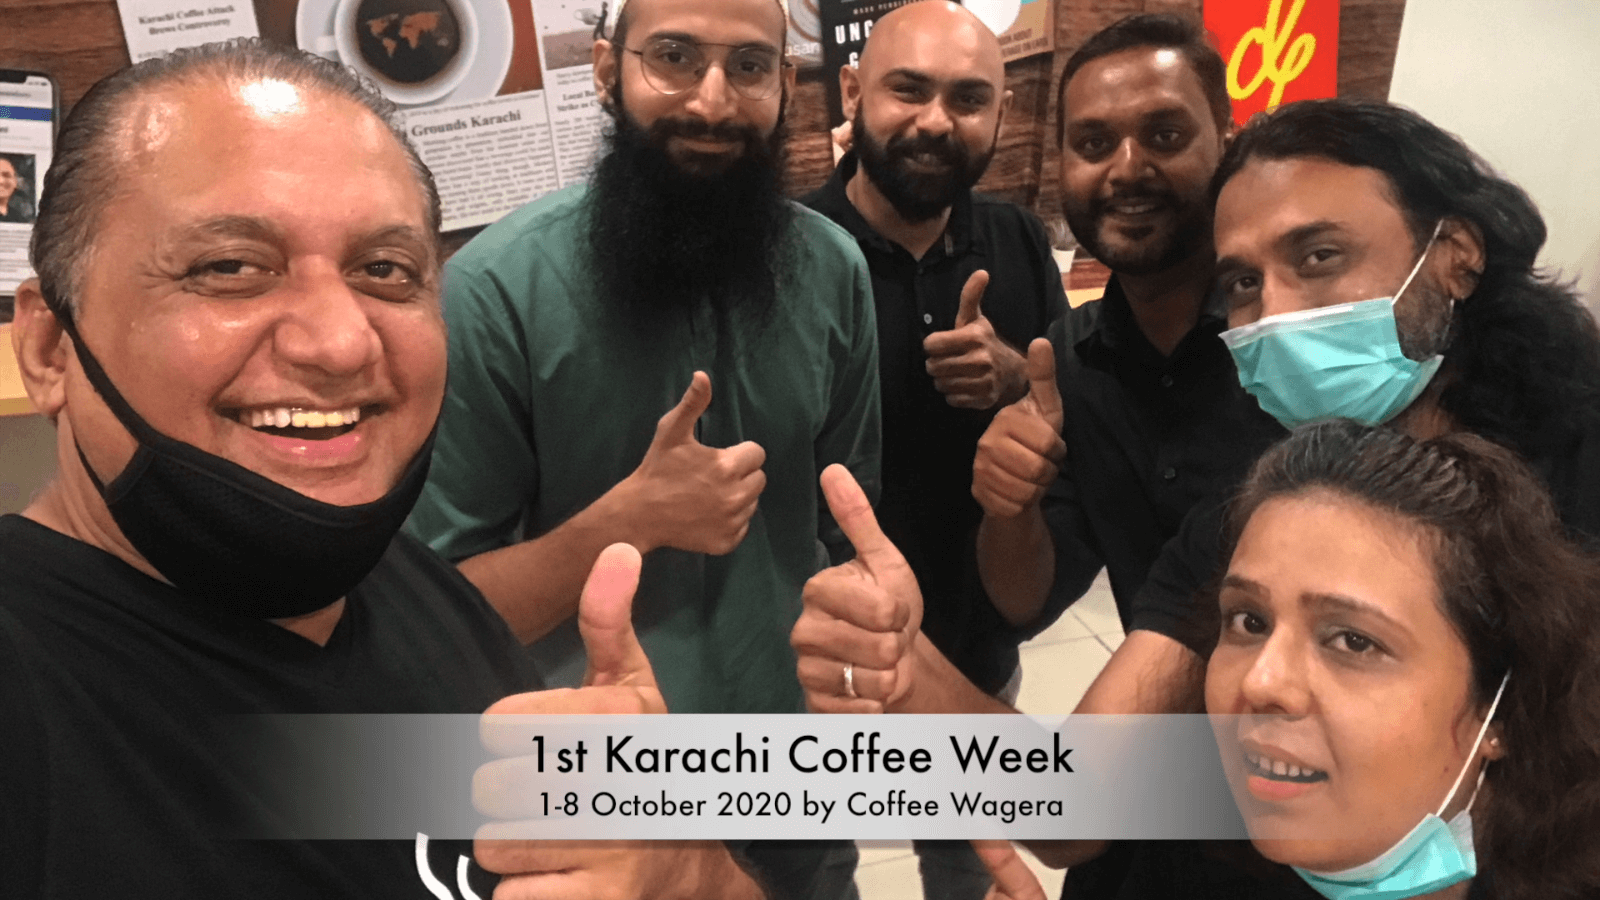 Coffee Wagera – Karachi Coffee Week Highlights